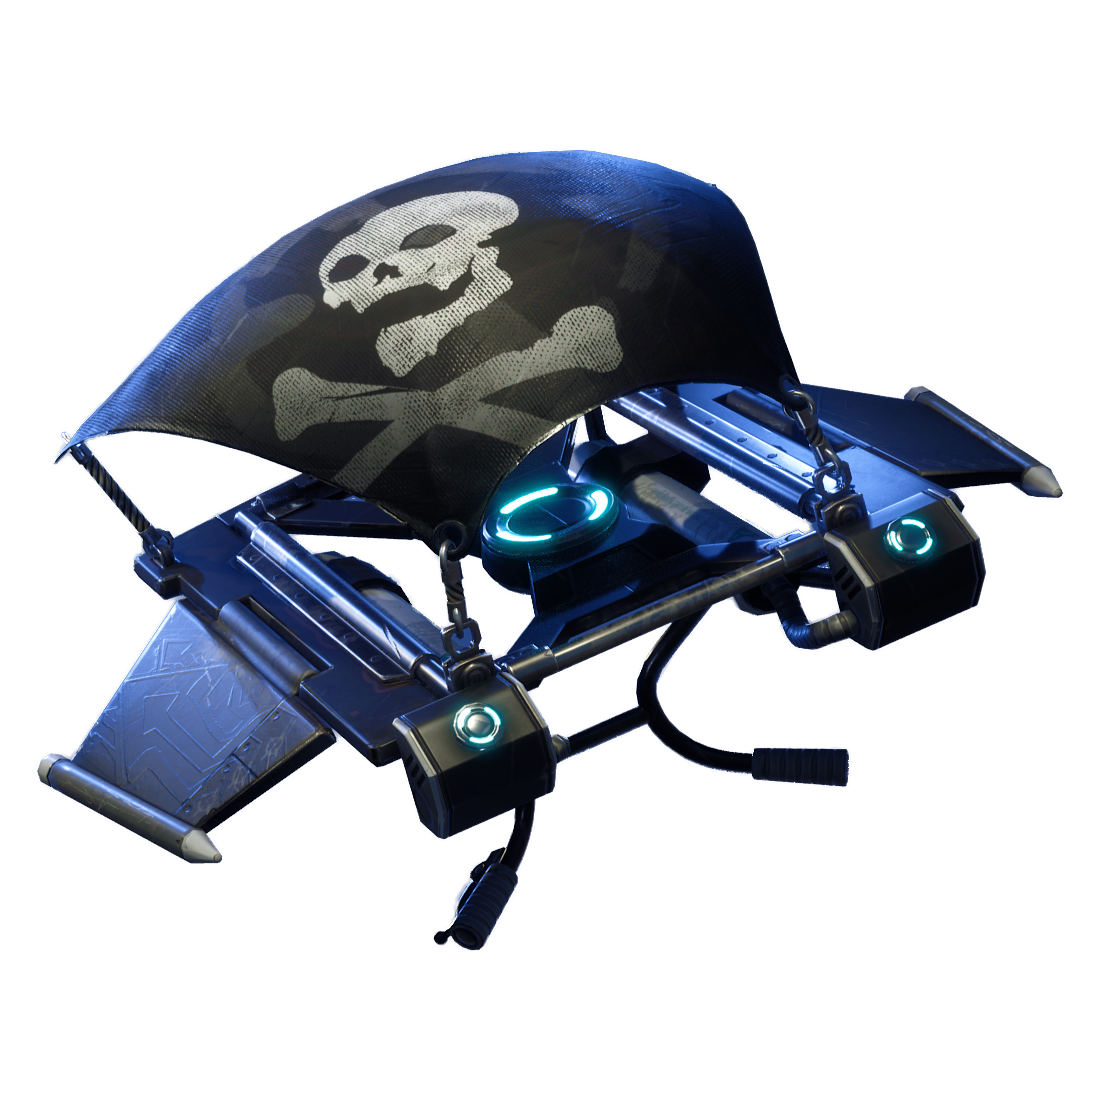 Helmet Bicycle Royale Fortnite Battle Glider PNG Image